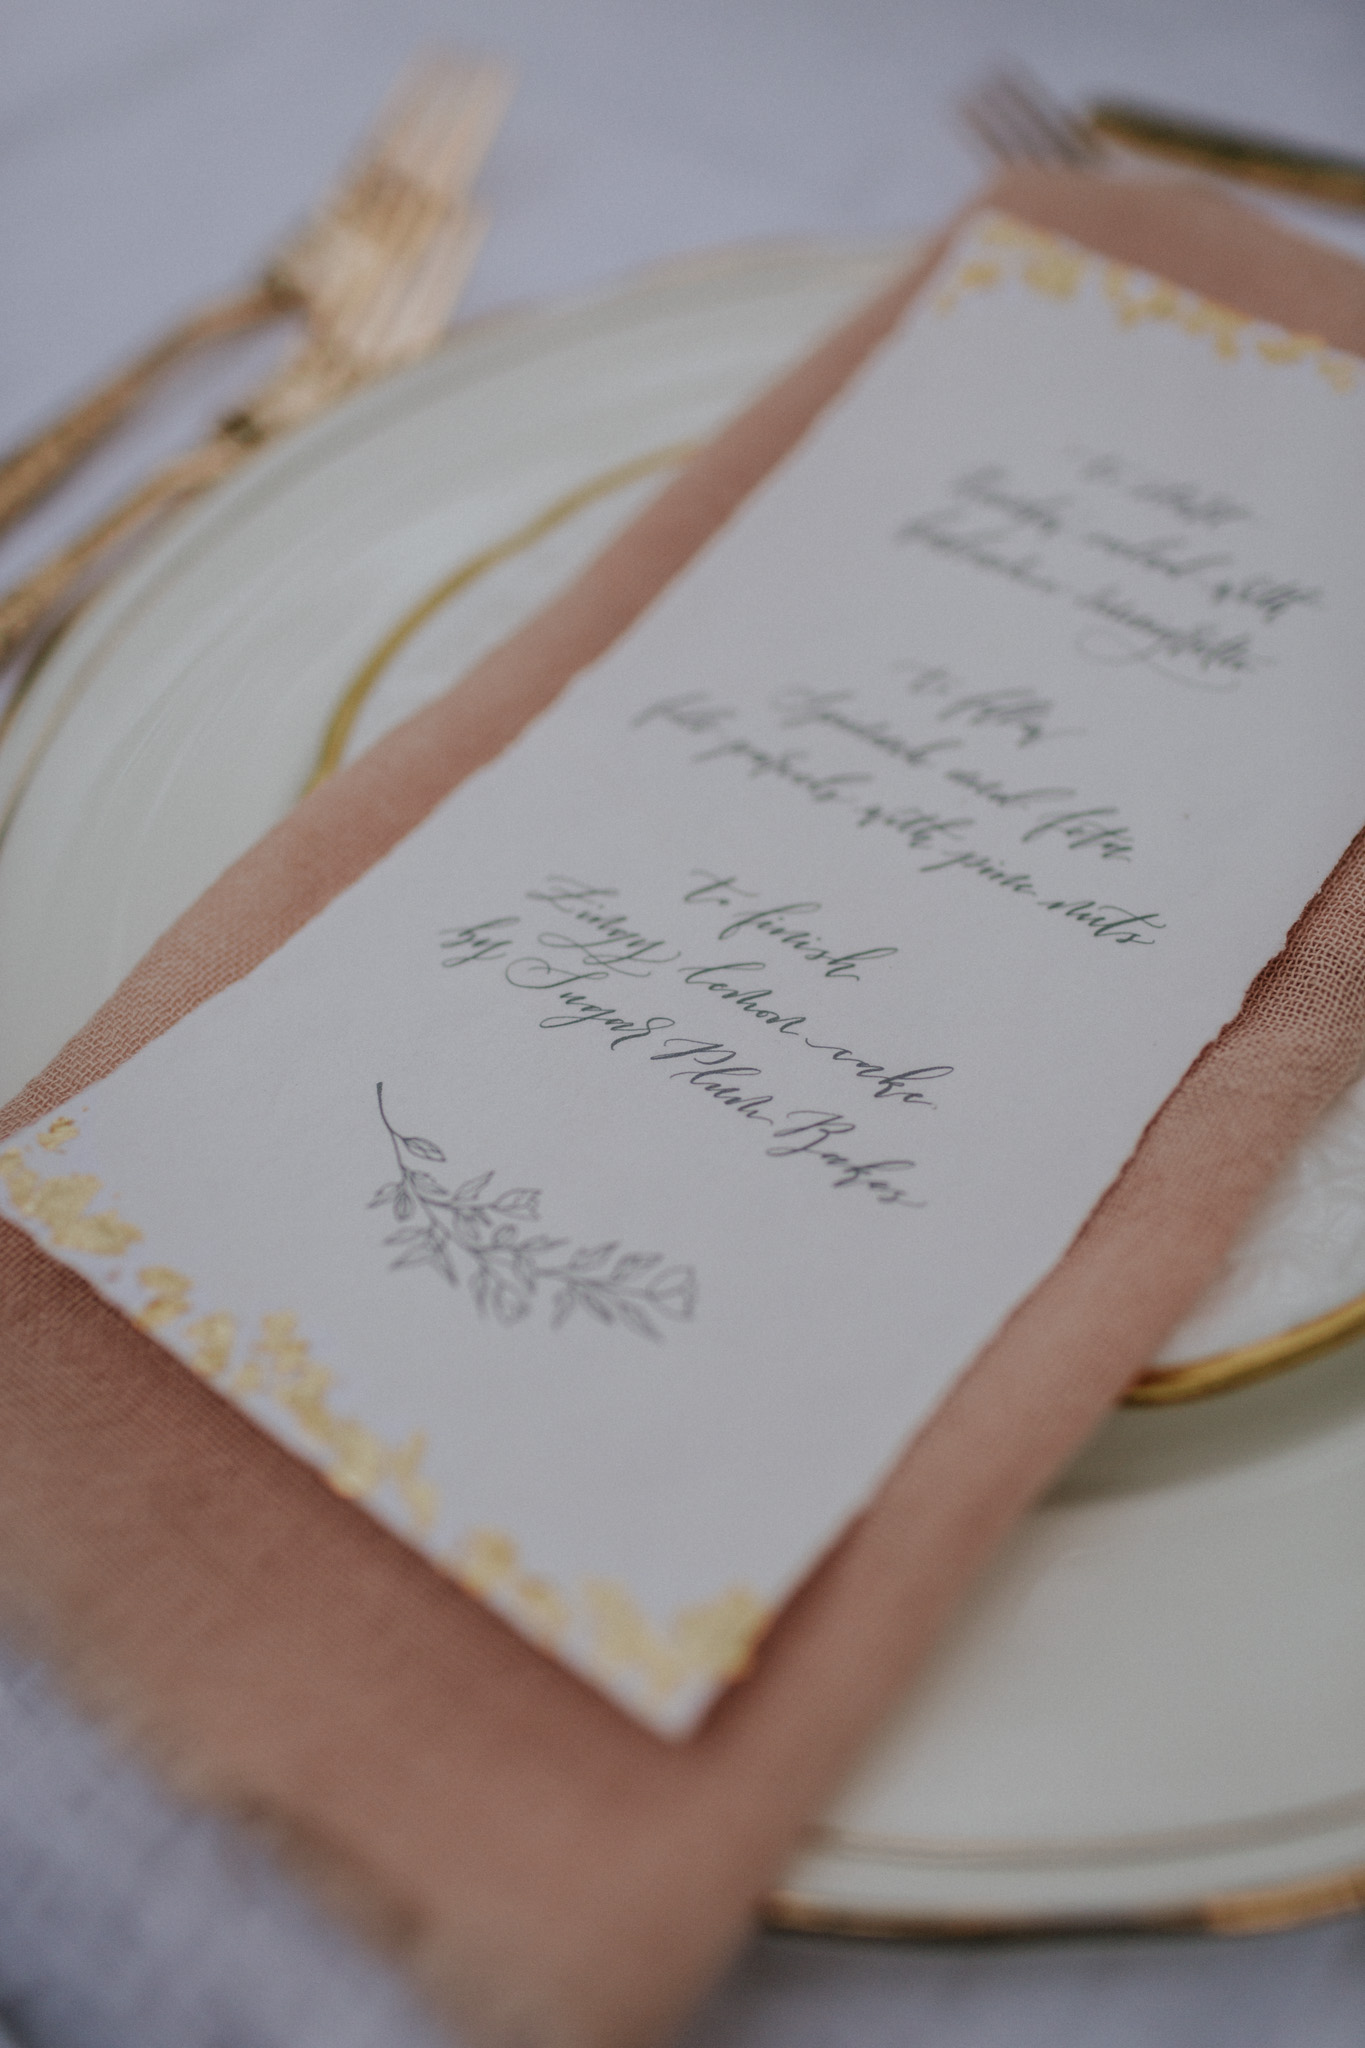 I used a slightly more bohemian but luxurious calligraphy style to fit the mood of the editorial.